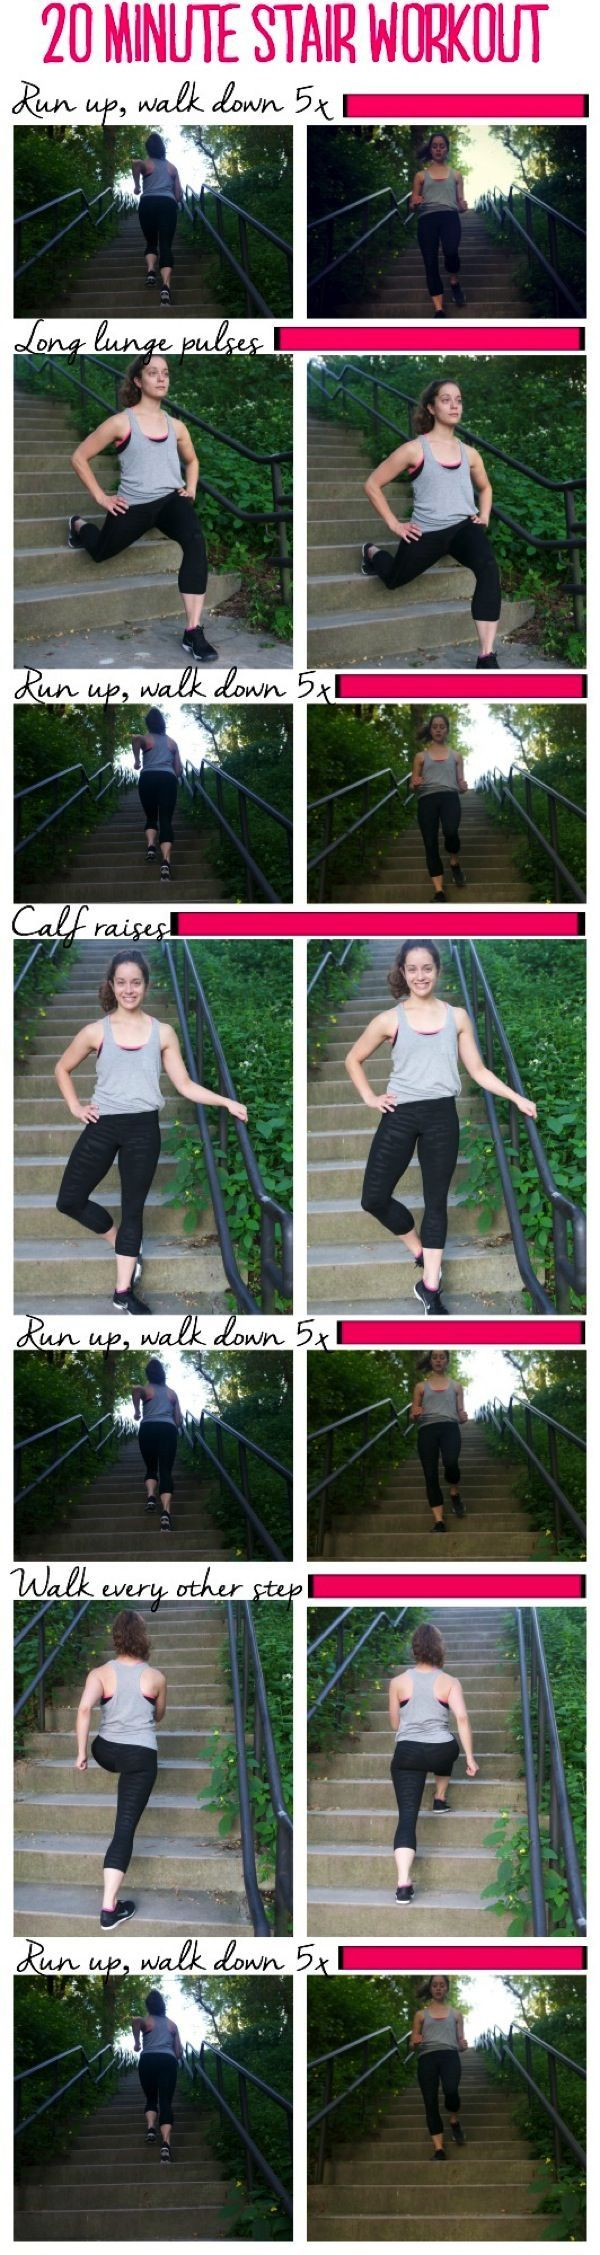 20 Minute Stair Workout | Take your workout outdoors with this quick stair workout